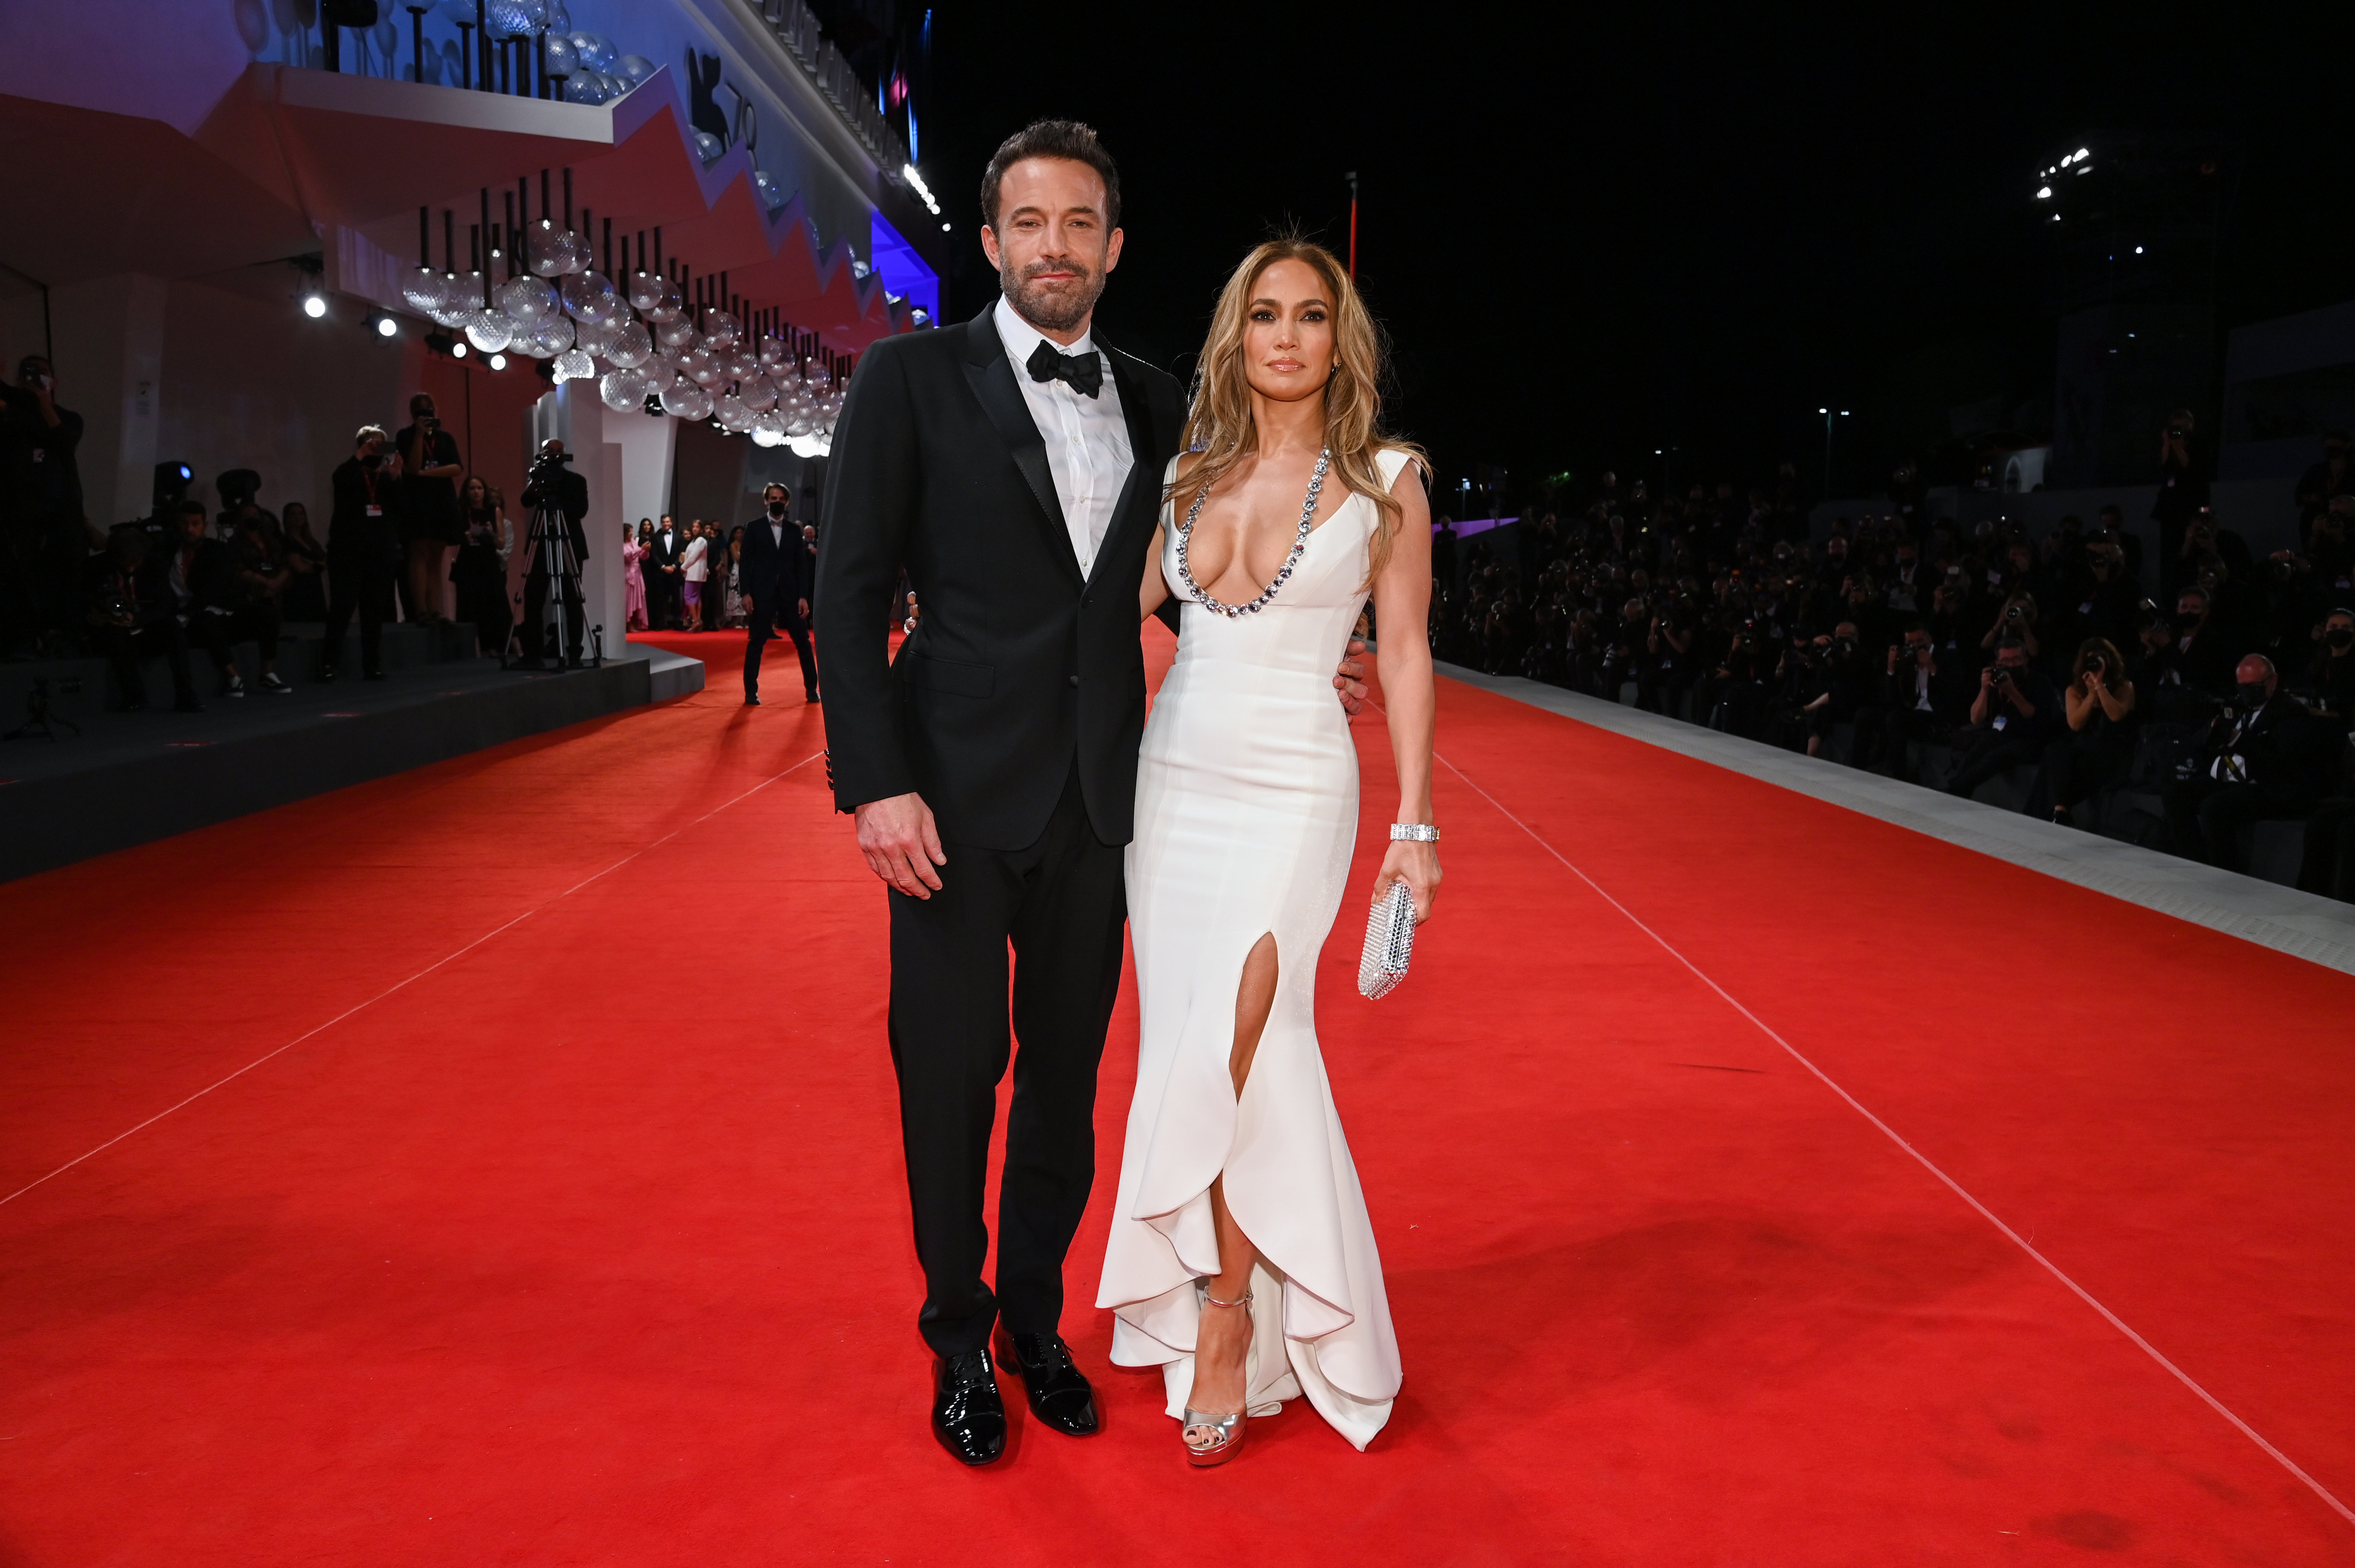 Jennifer Lopez and Ben Affleck at an event for The Last Duel (2021)